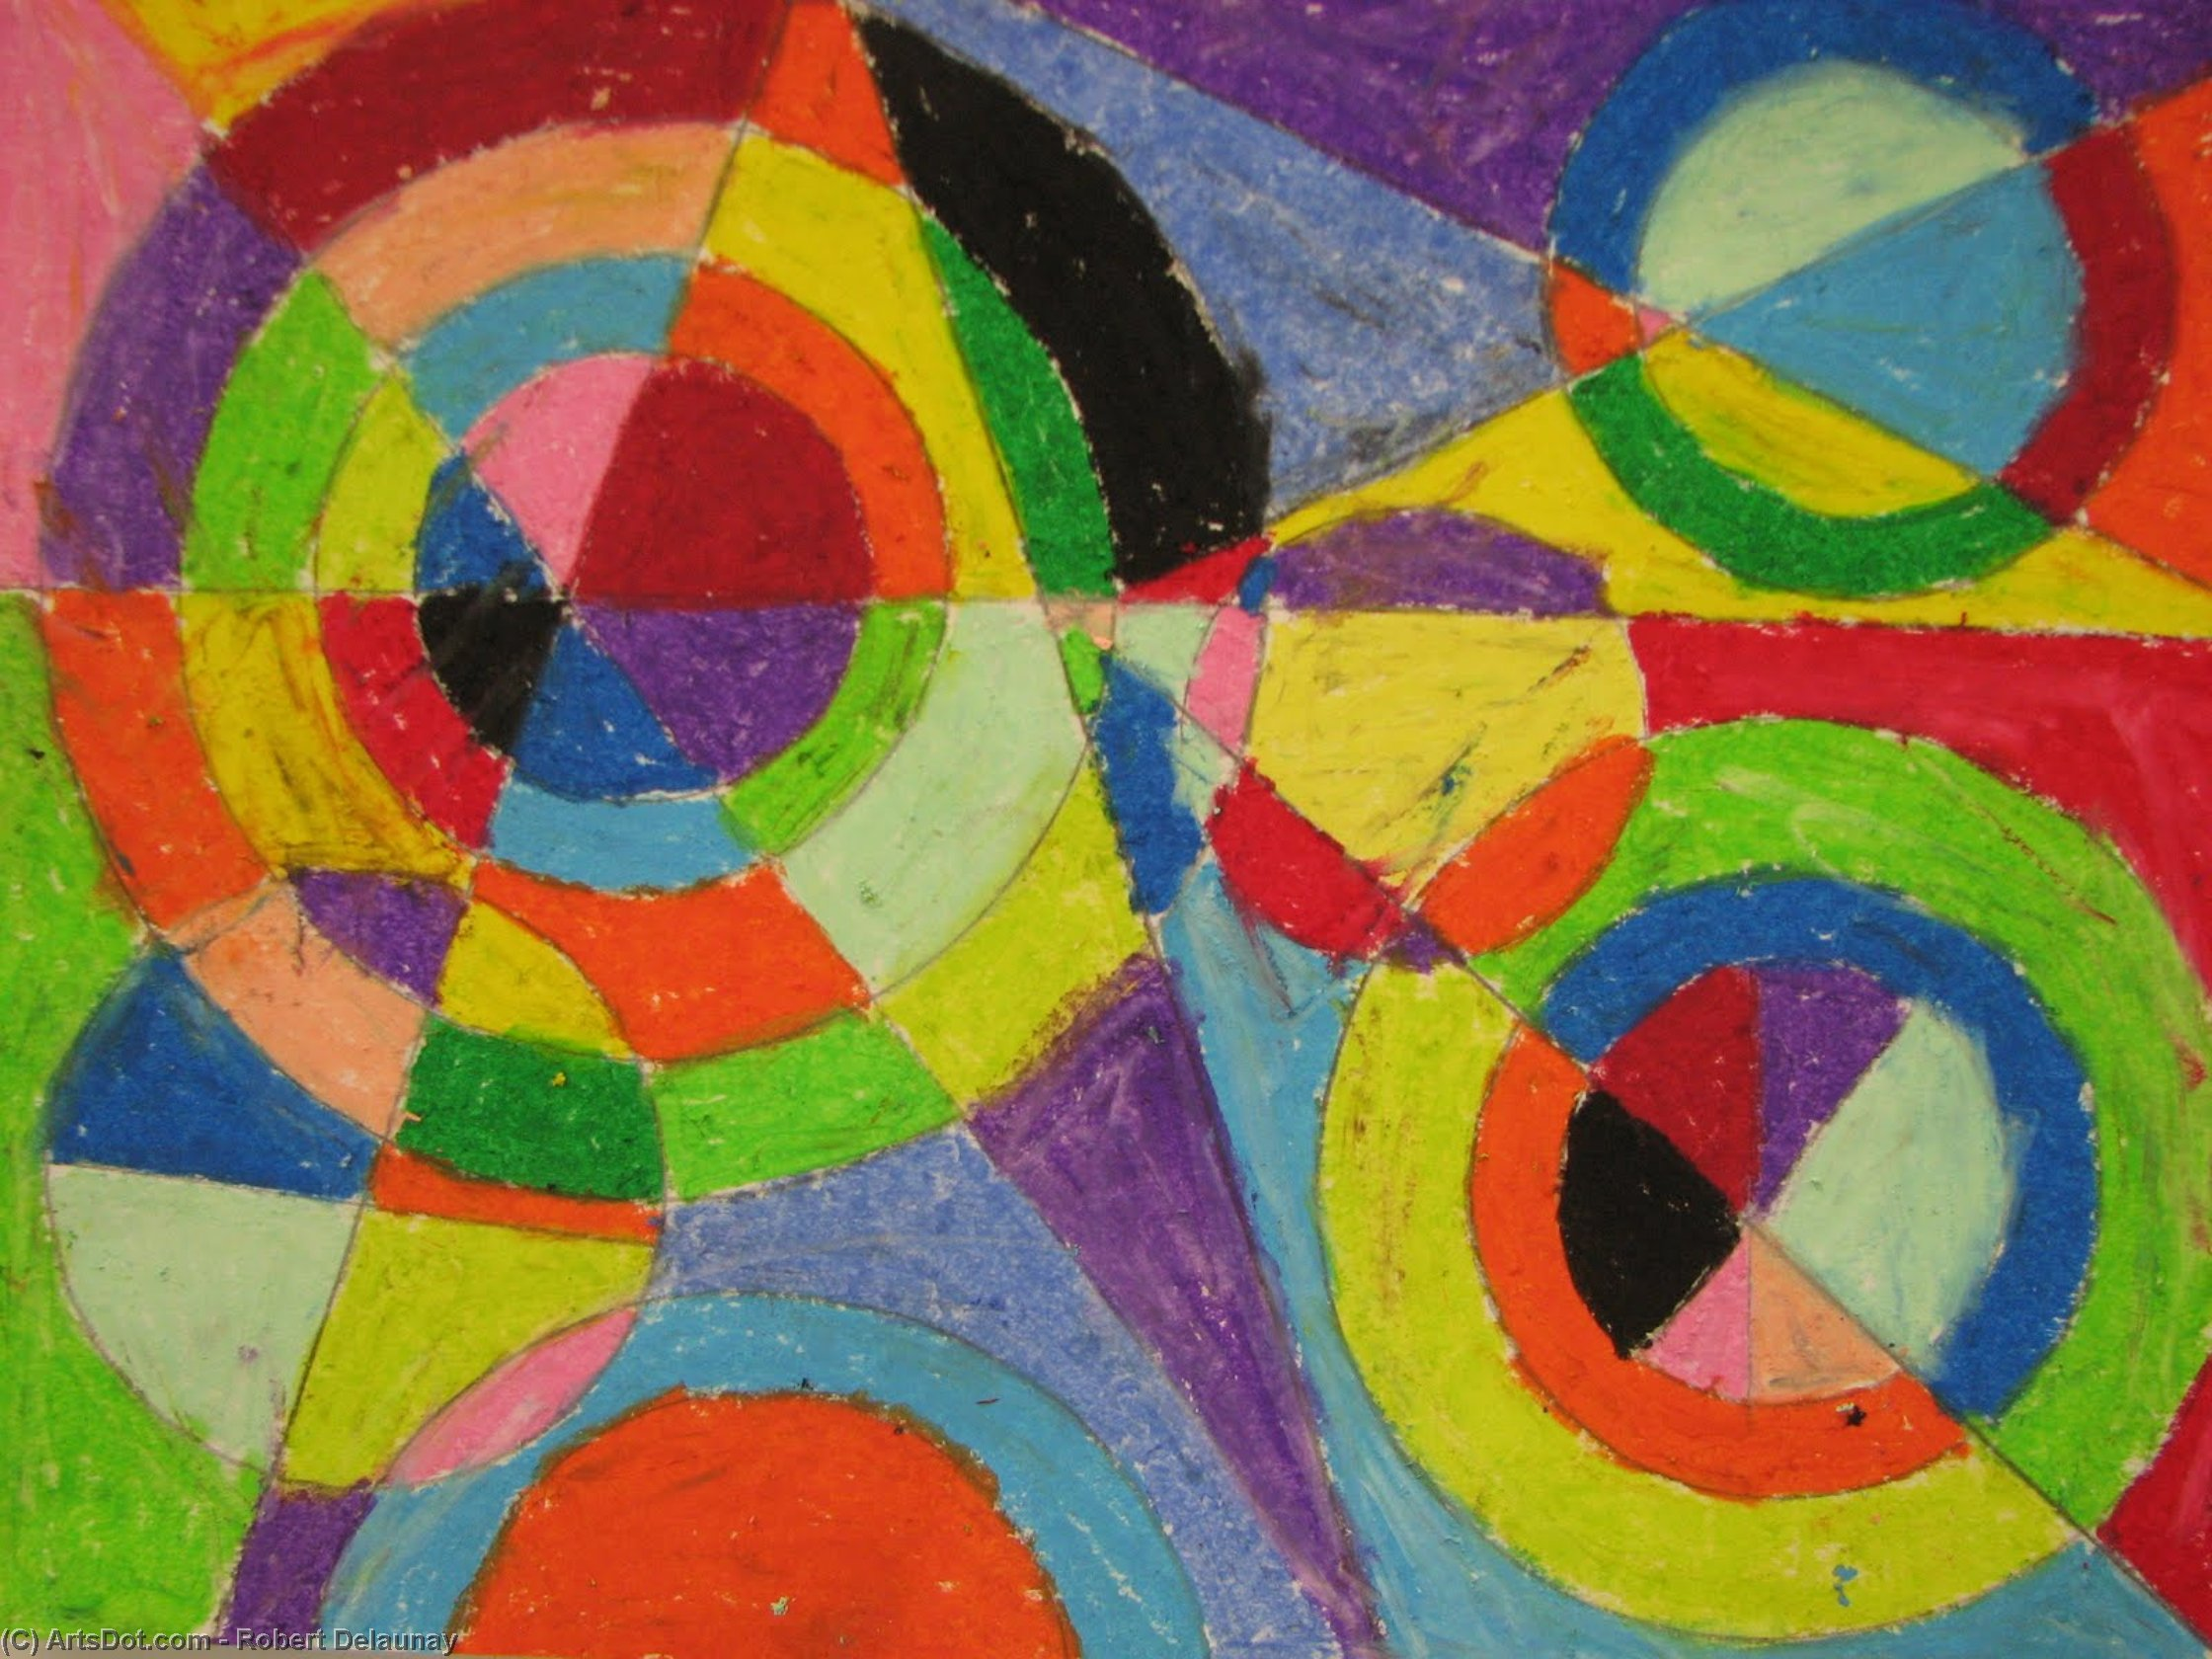 Color Explosion by Robert Delaunay (1885-1941, France)